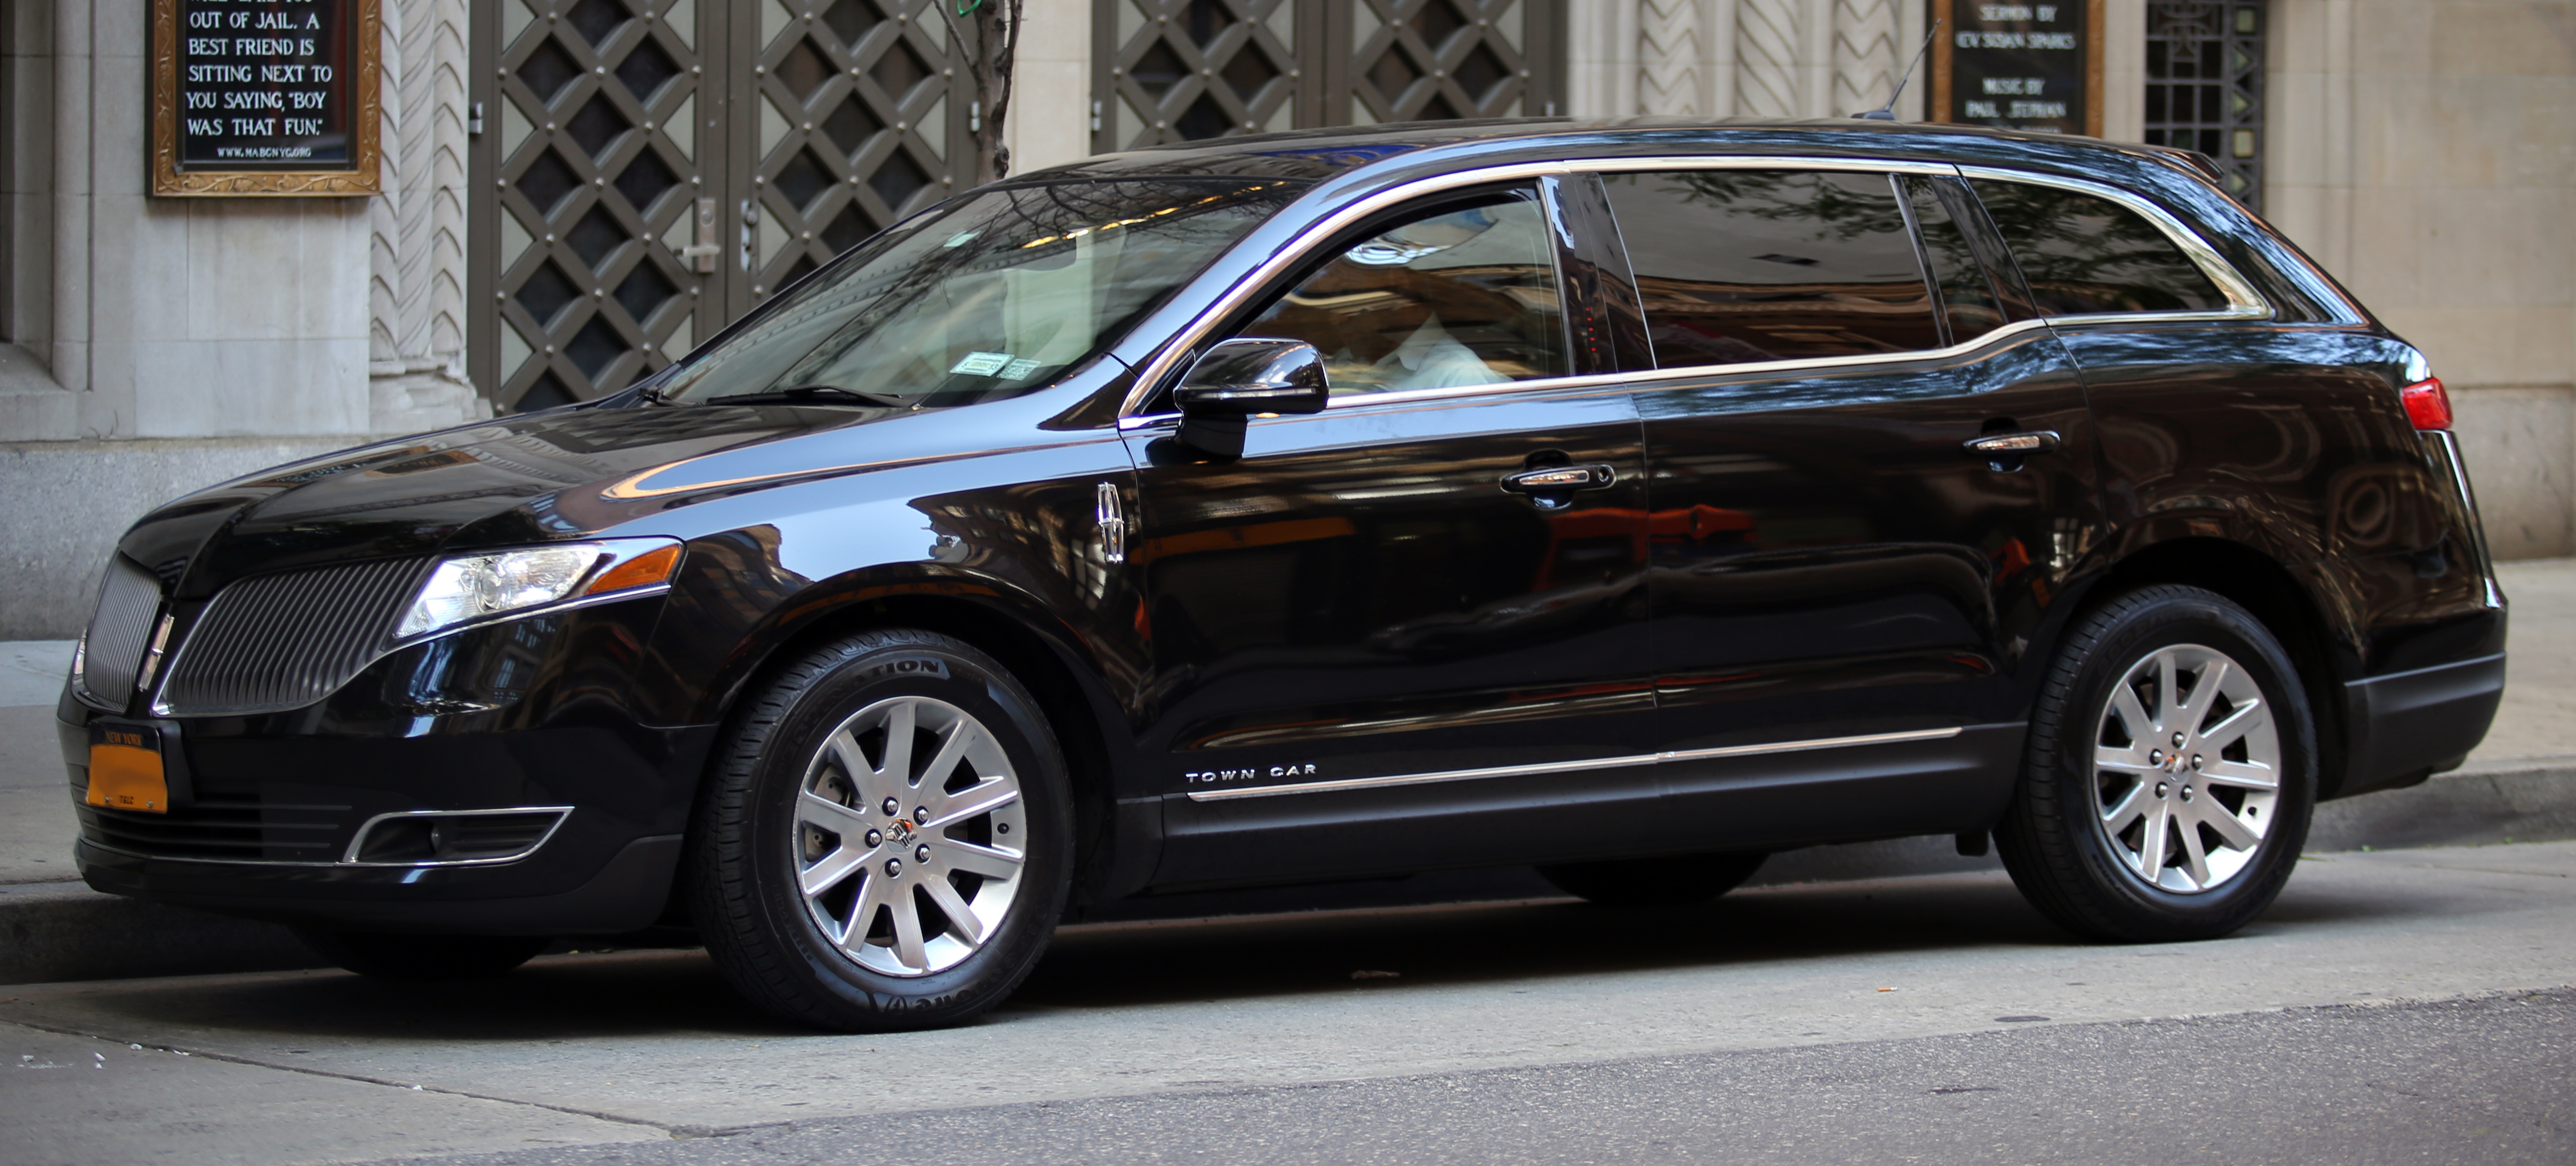 file 2013 lincoln mk t town car nyc jpg wikimedia commons. Black Bedroom Furniture Sets. Home Design Ideas